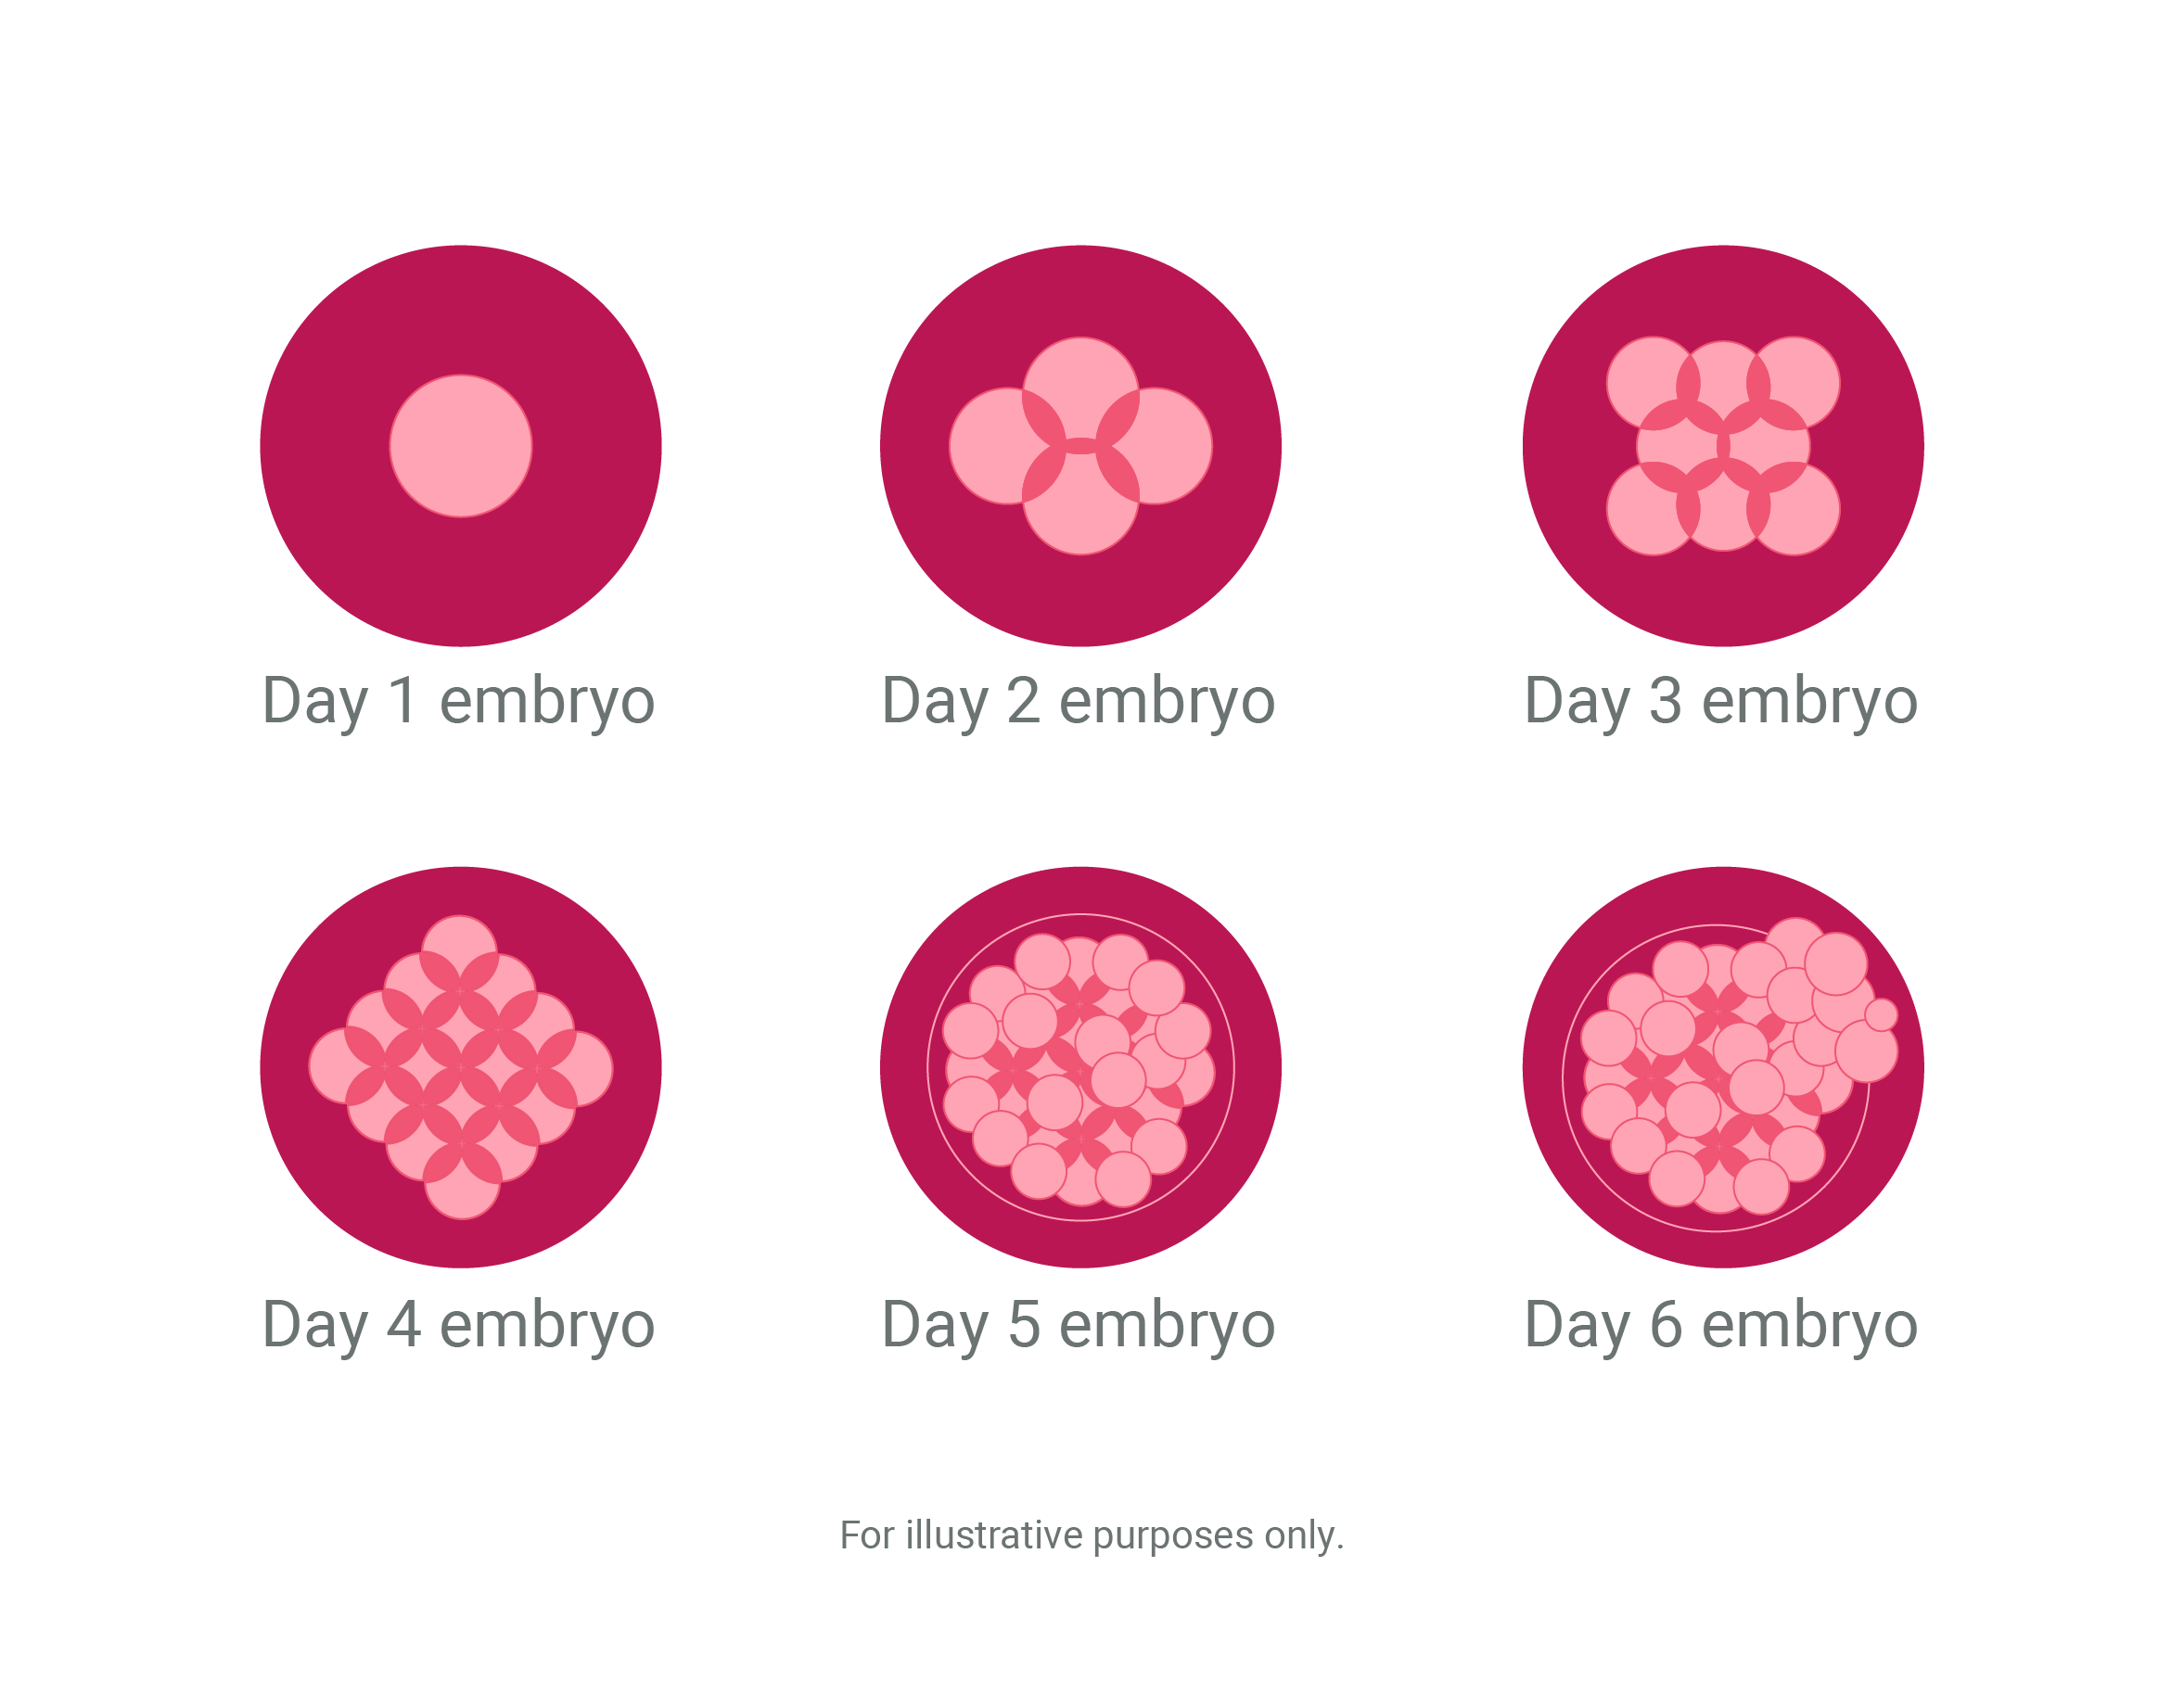 Phases of cells illustration